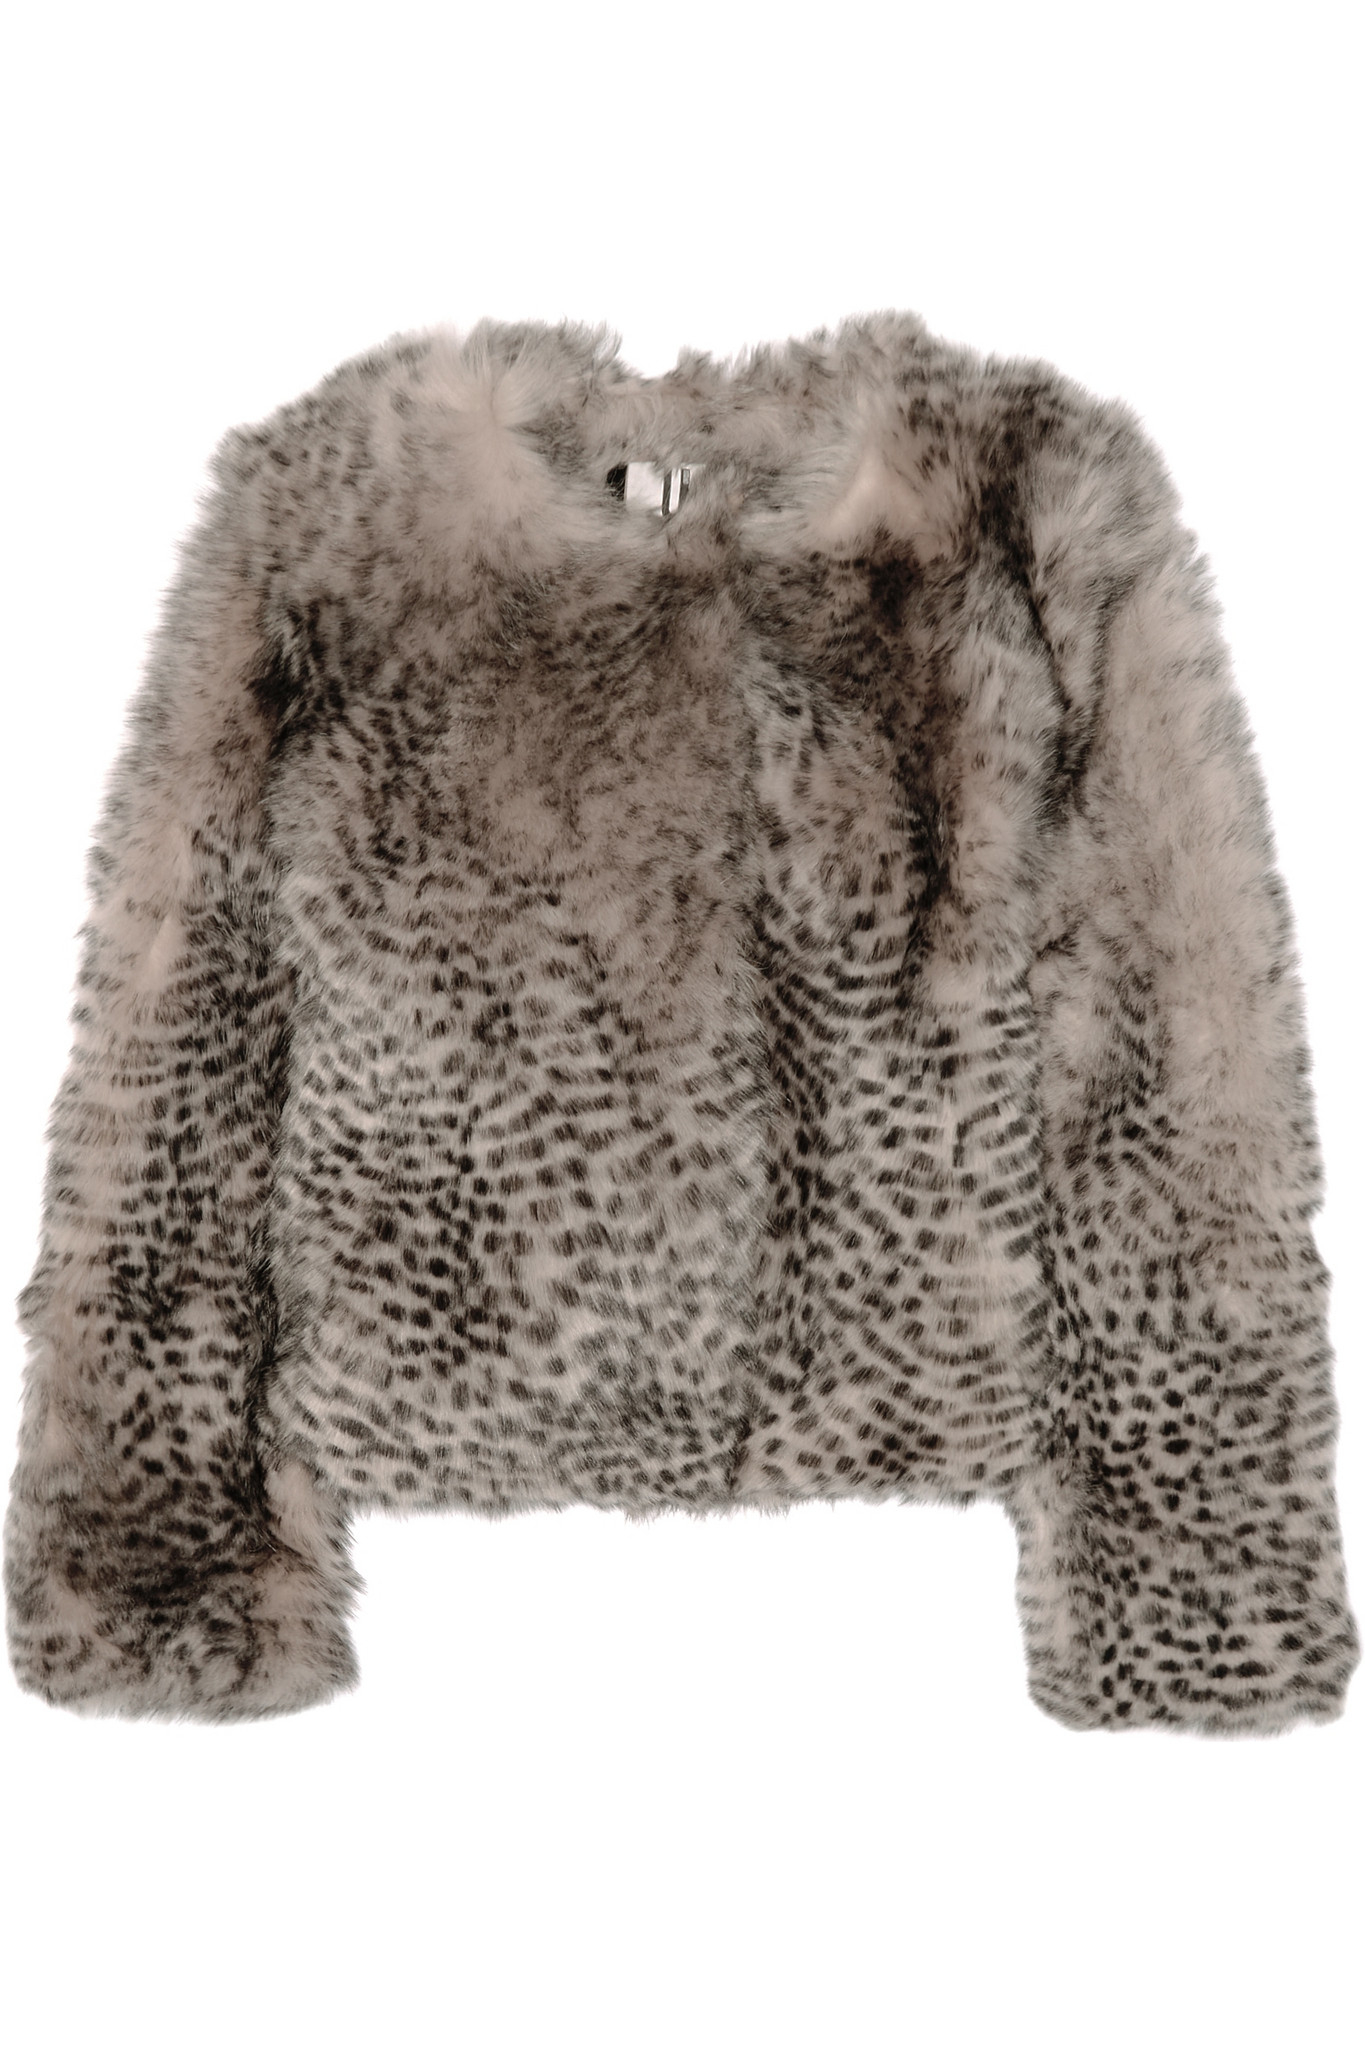 4206d8f33a0a Topshop Unique - D'arblay Chubby Animal-print Shearling Jacket ...